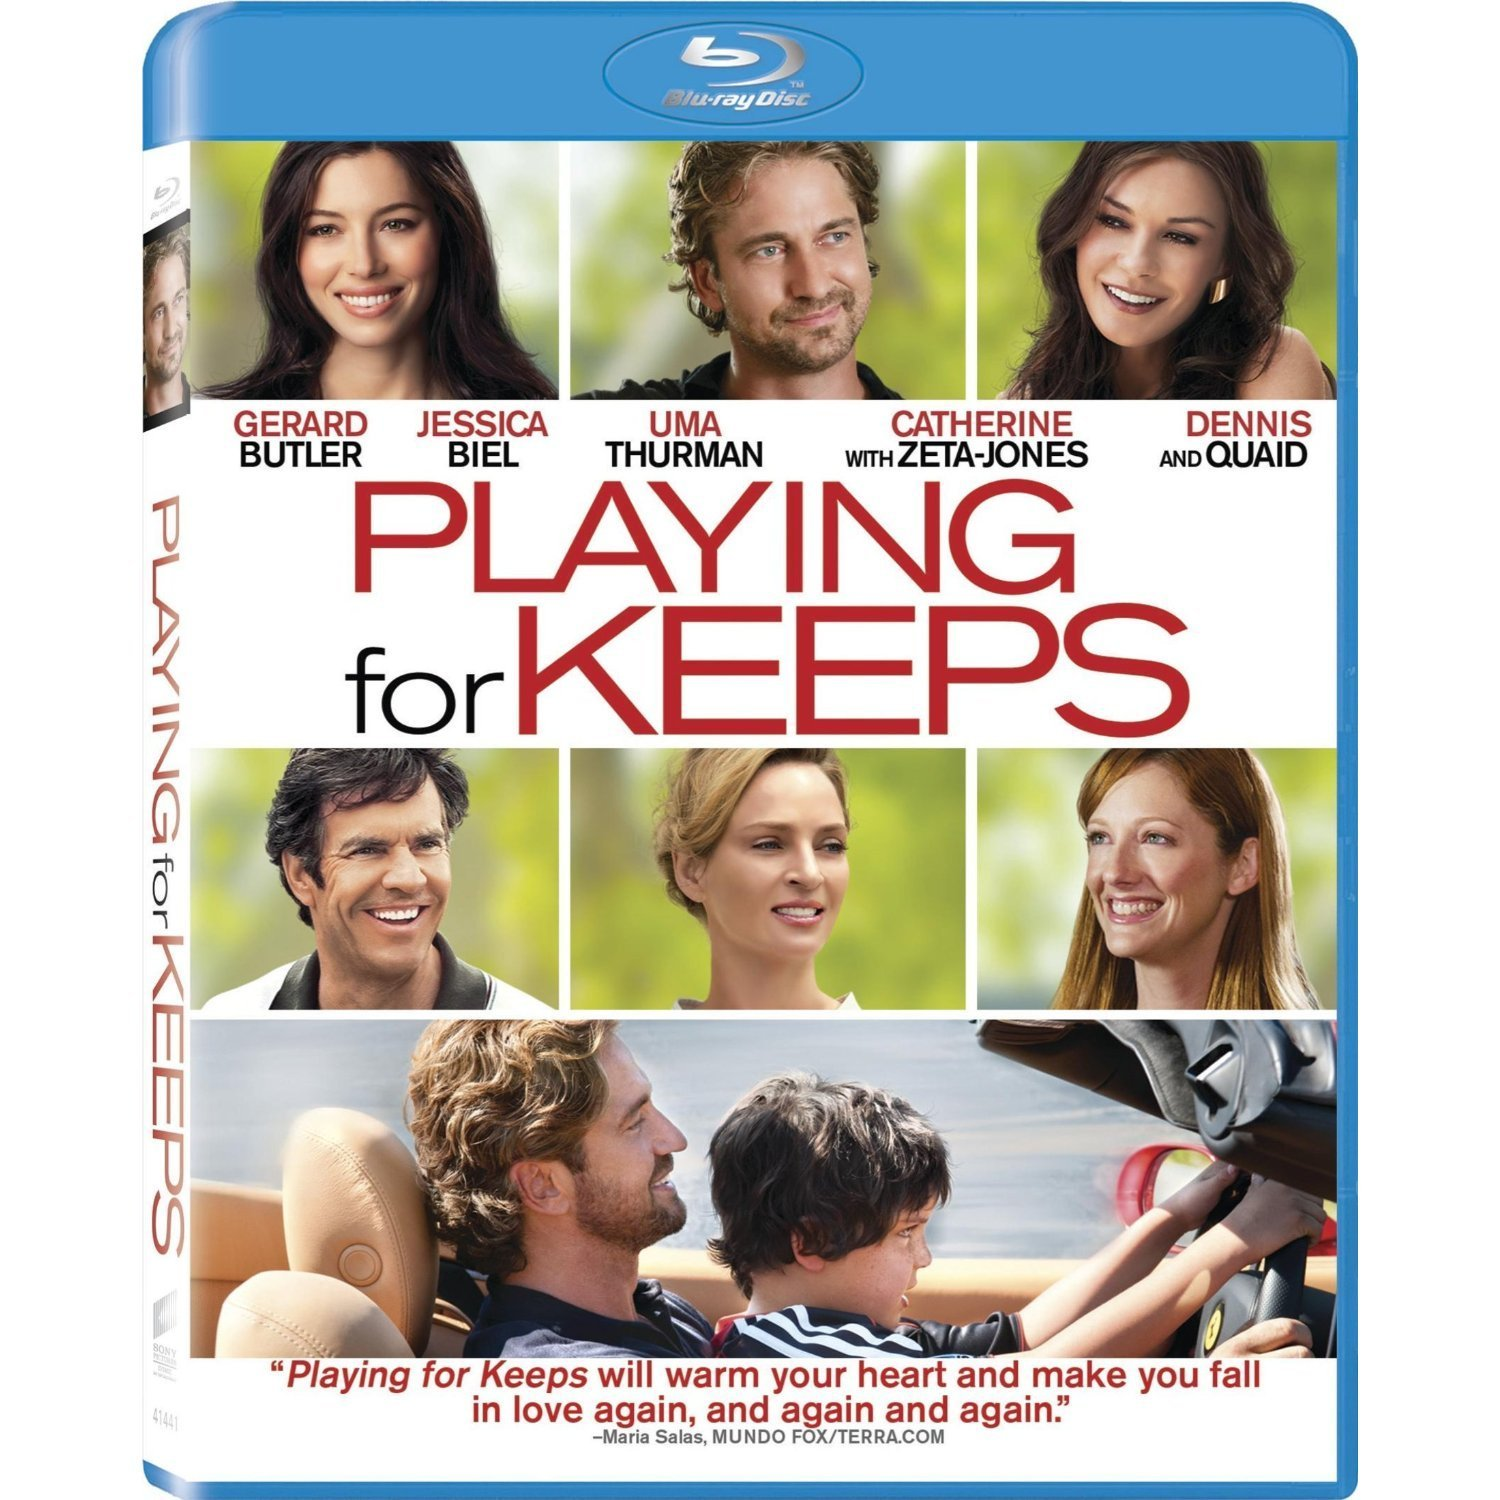 Playing For Keeps - Blu-ray 36C-G30-COLBR41441